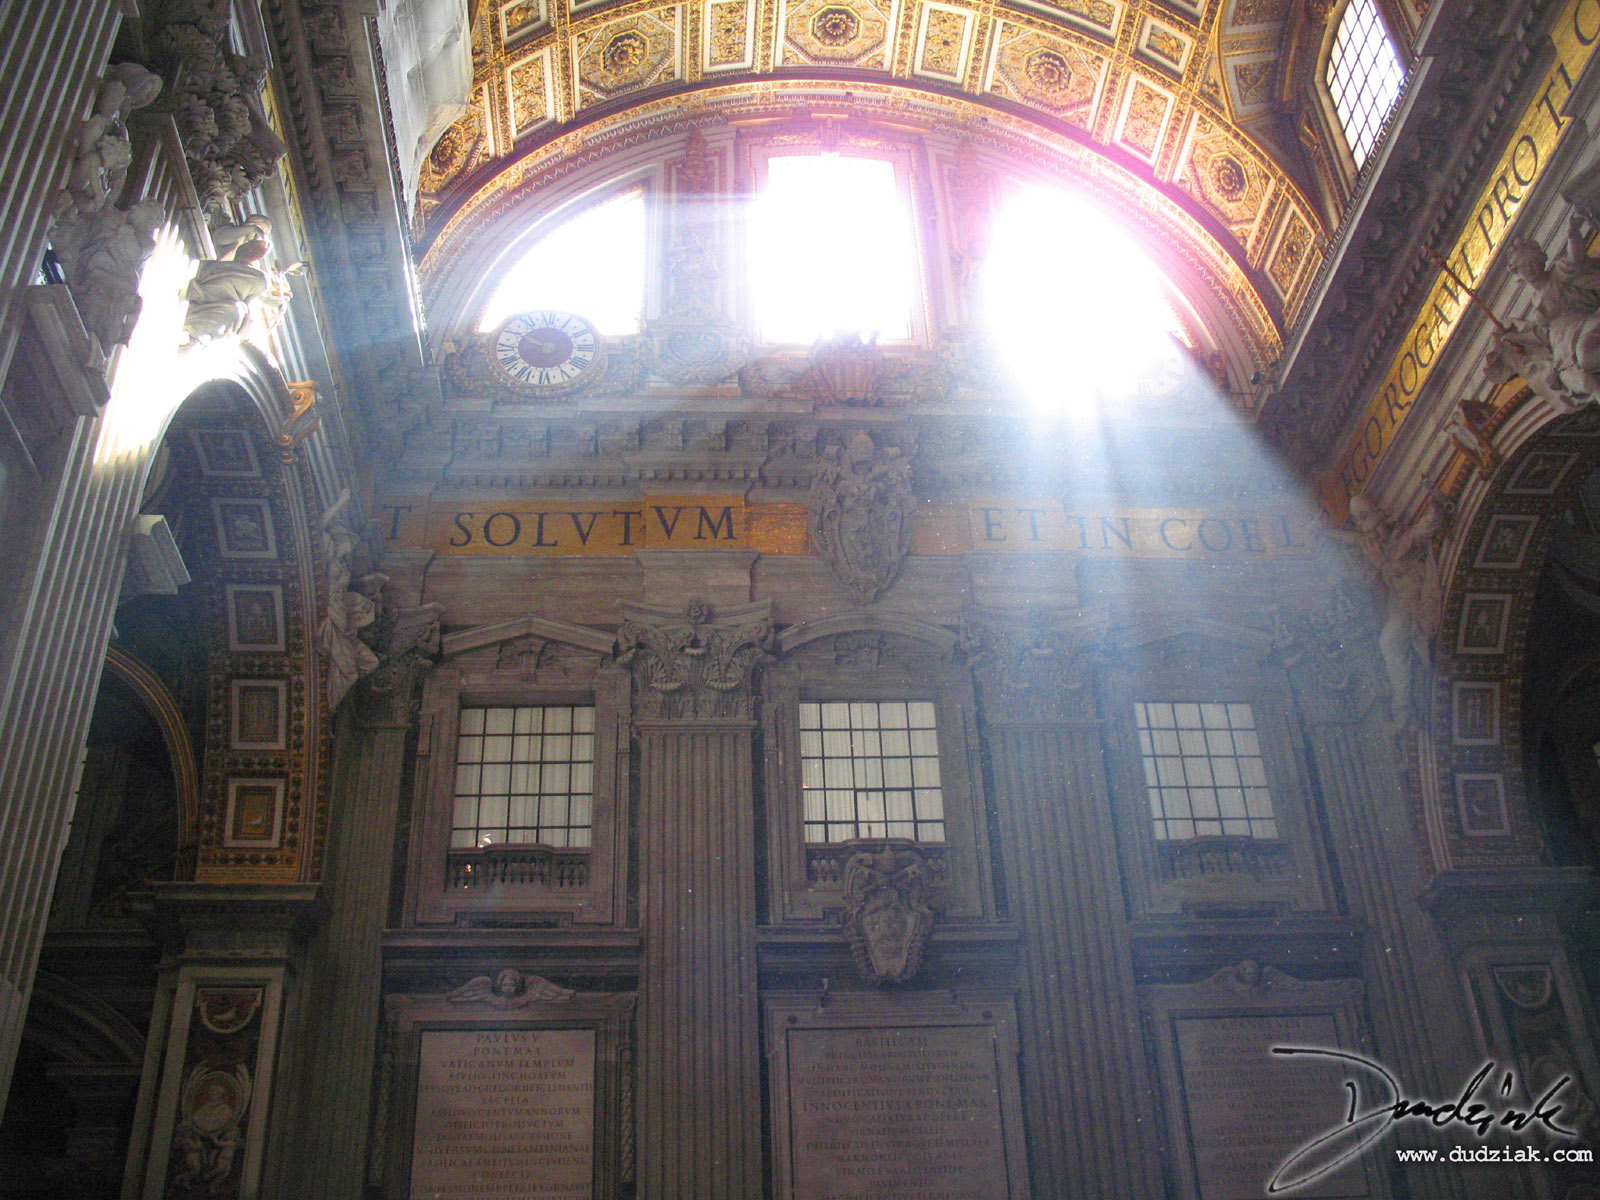 Saint Peter's Basilica, rear wall with sunlight coming in the windows.